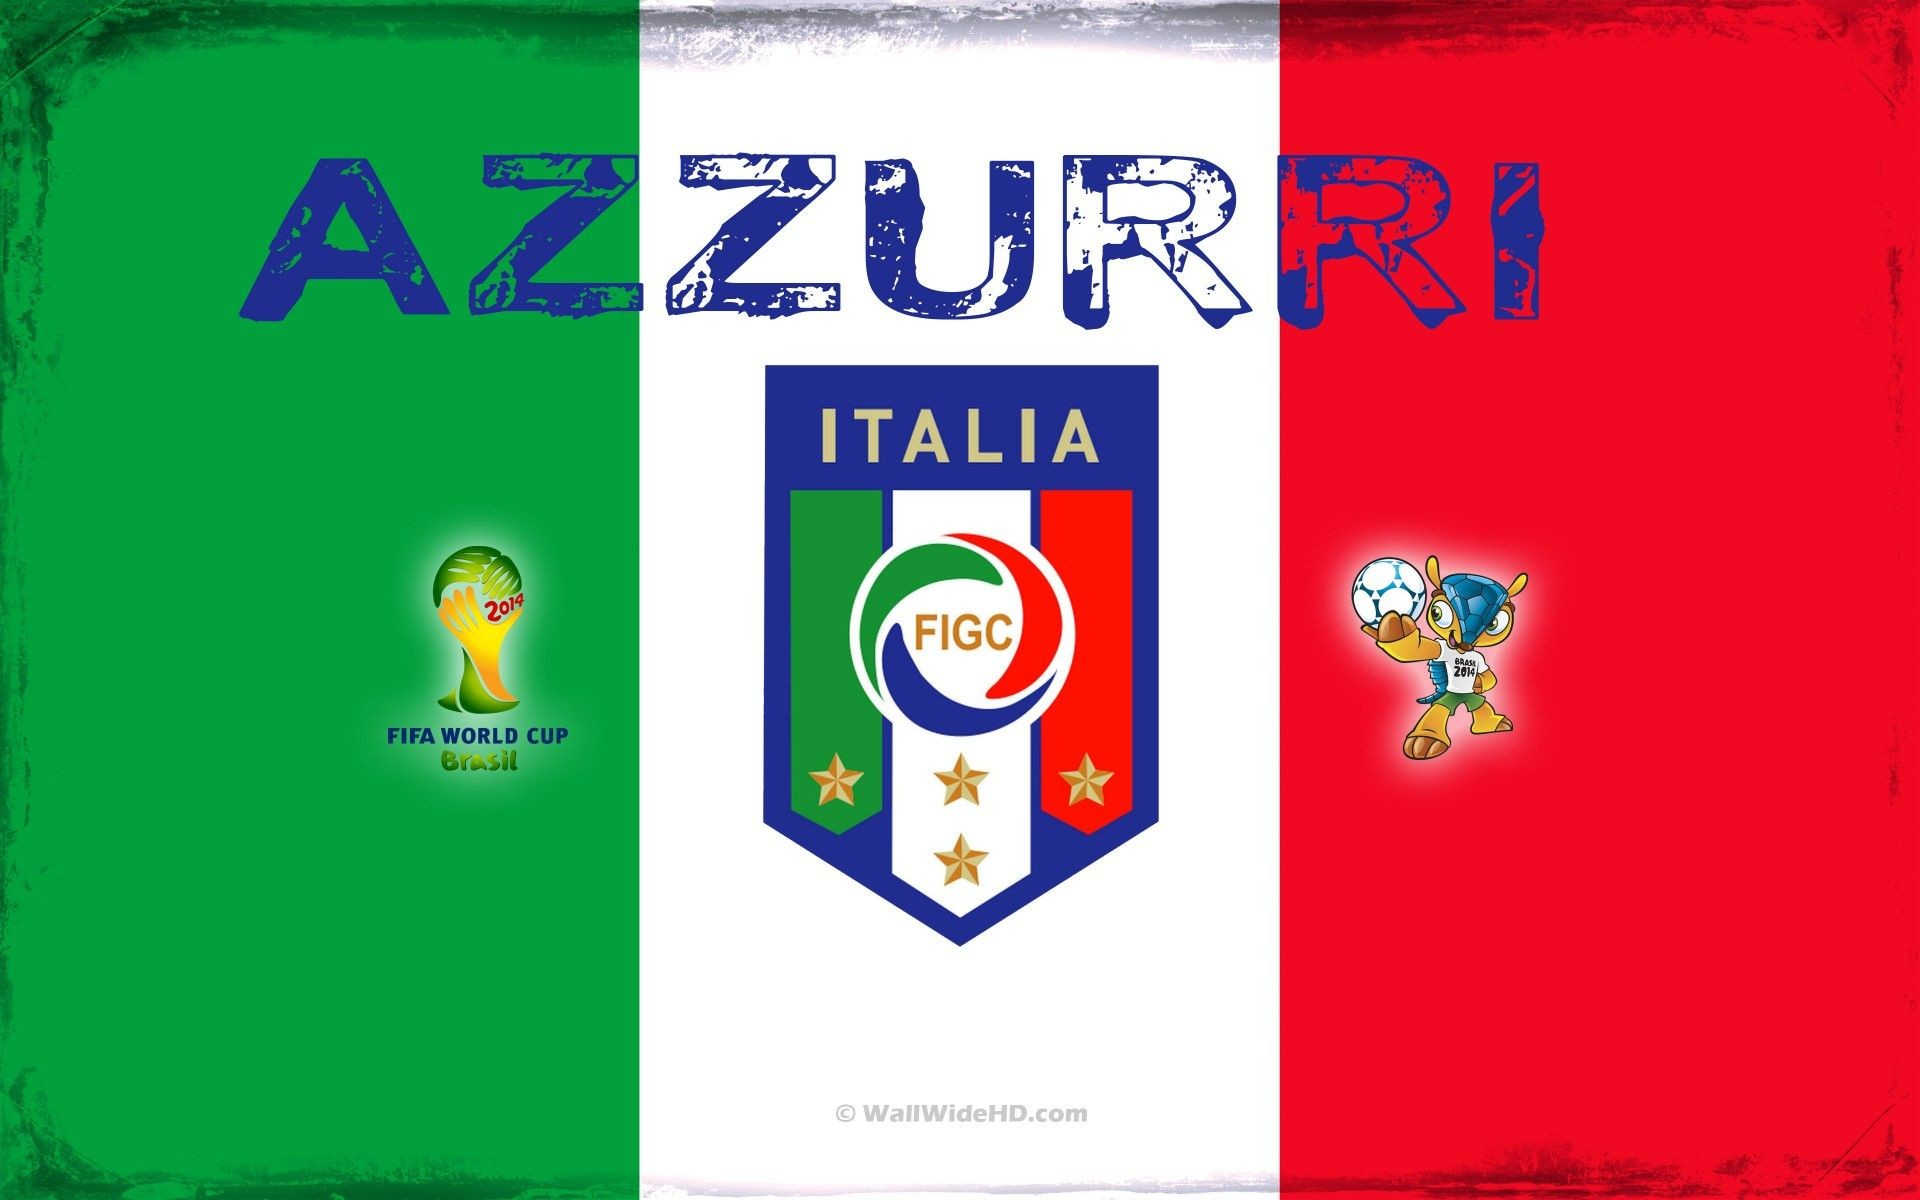 Italy National Football Team 2014 World Cup Logo Wallpapers | FIFA